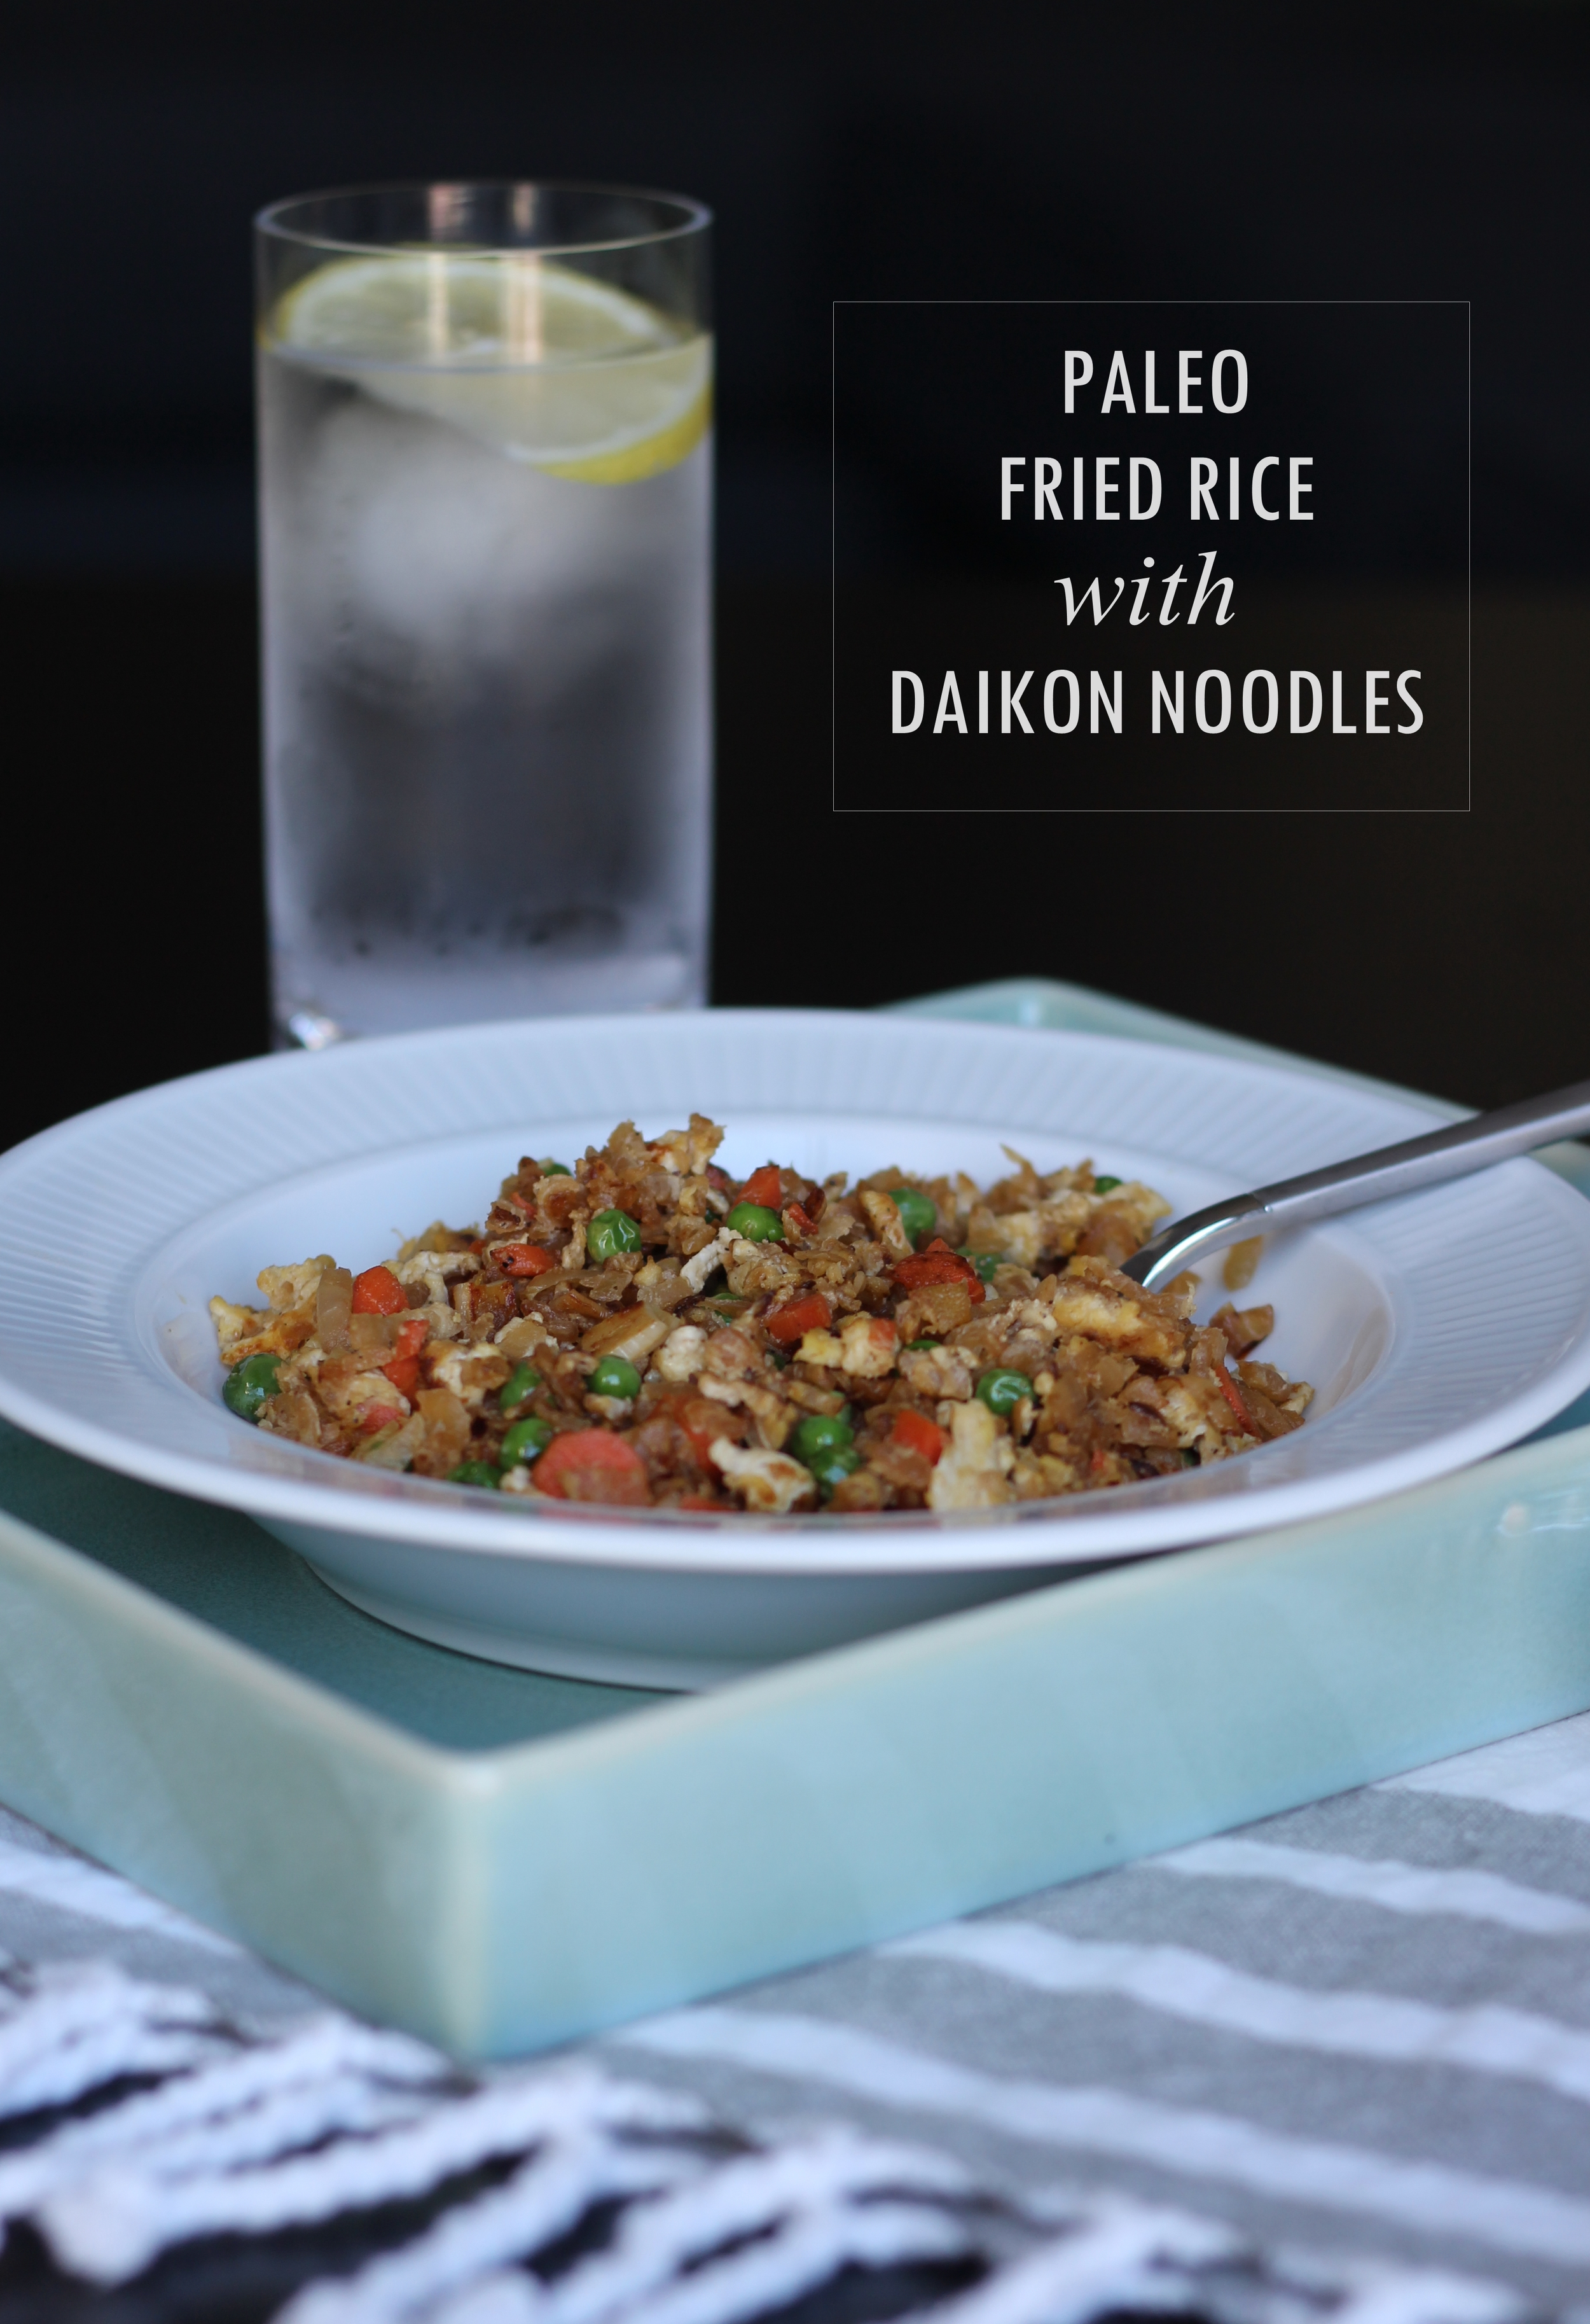 Paleo Fried Rice with Daikon Noodles | Freckled Italian